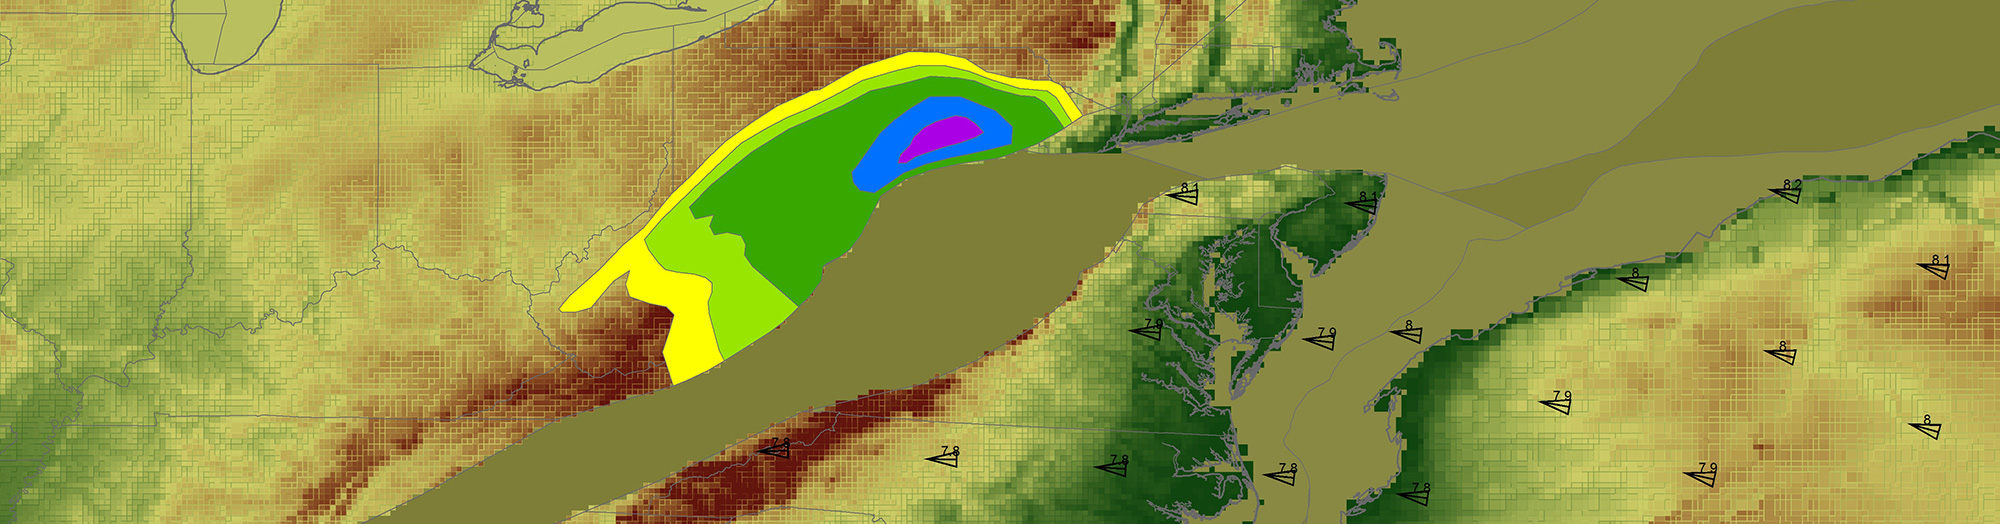 Could it have produced oil and where did it go? Simulate greenfield basin history, with PaleoGIS plate tectonics and basin analysis software for geologists and oil and gas, mineral exploration